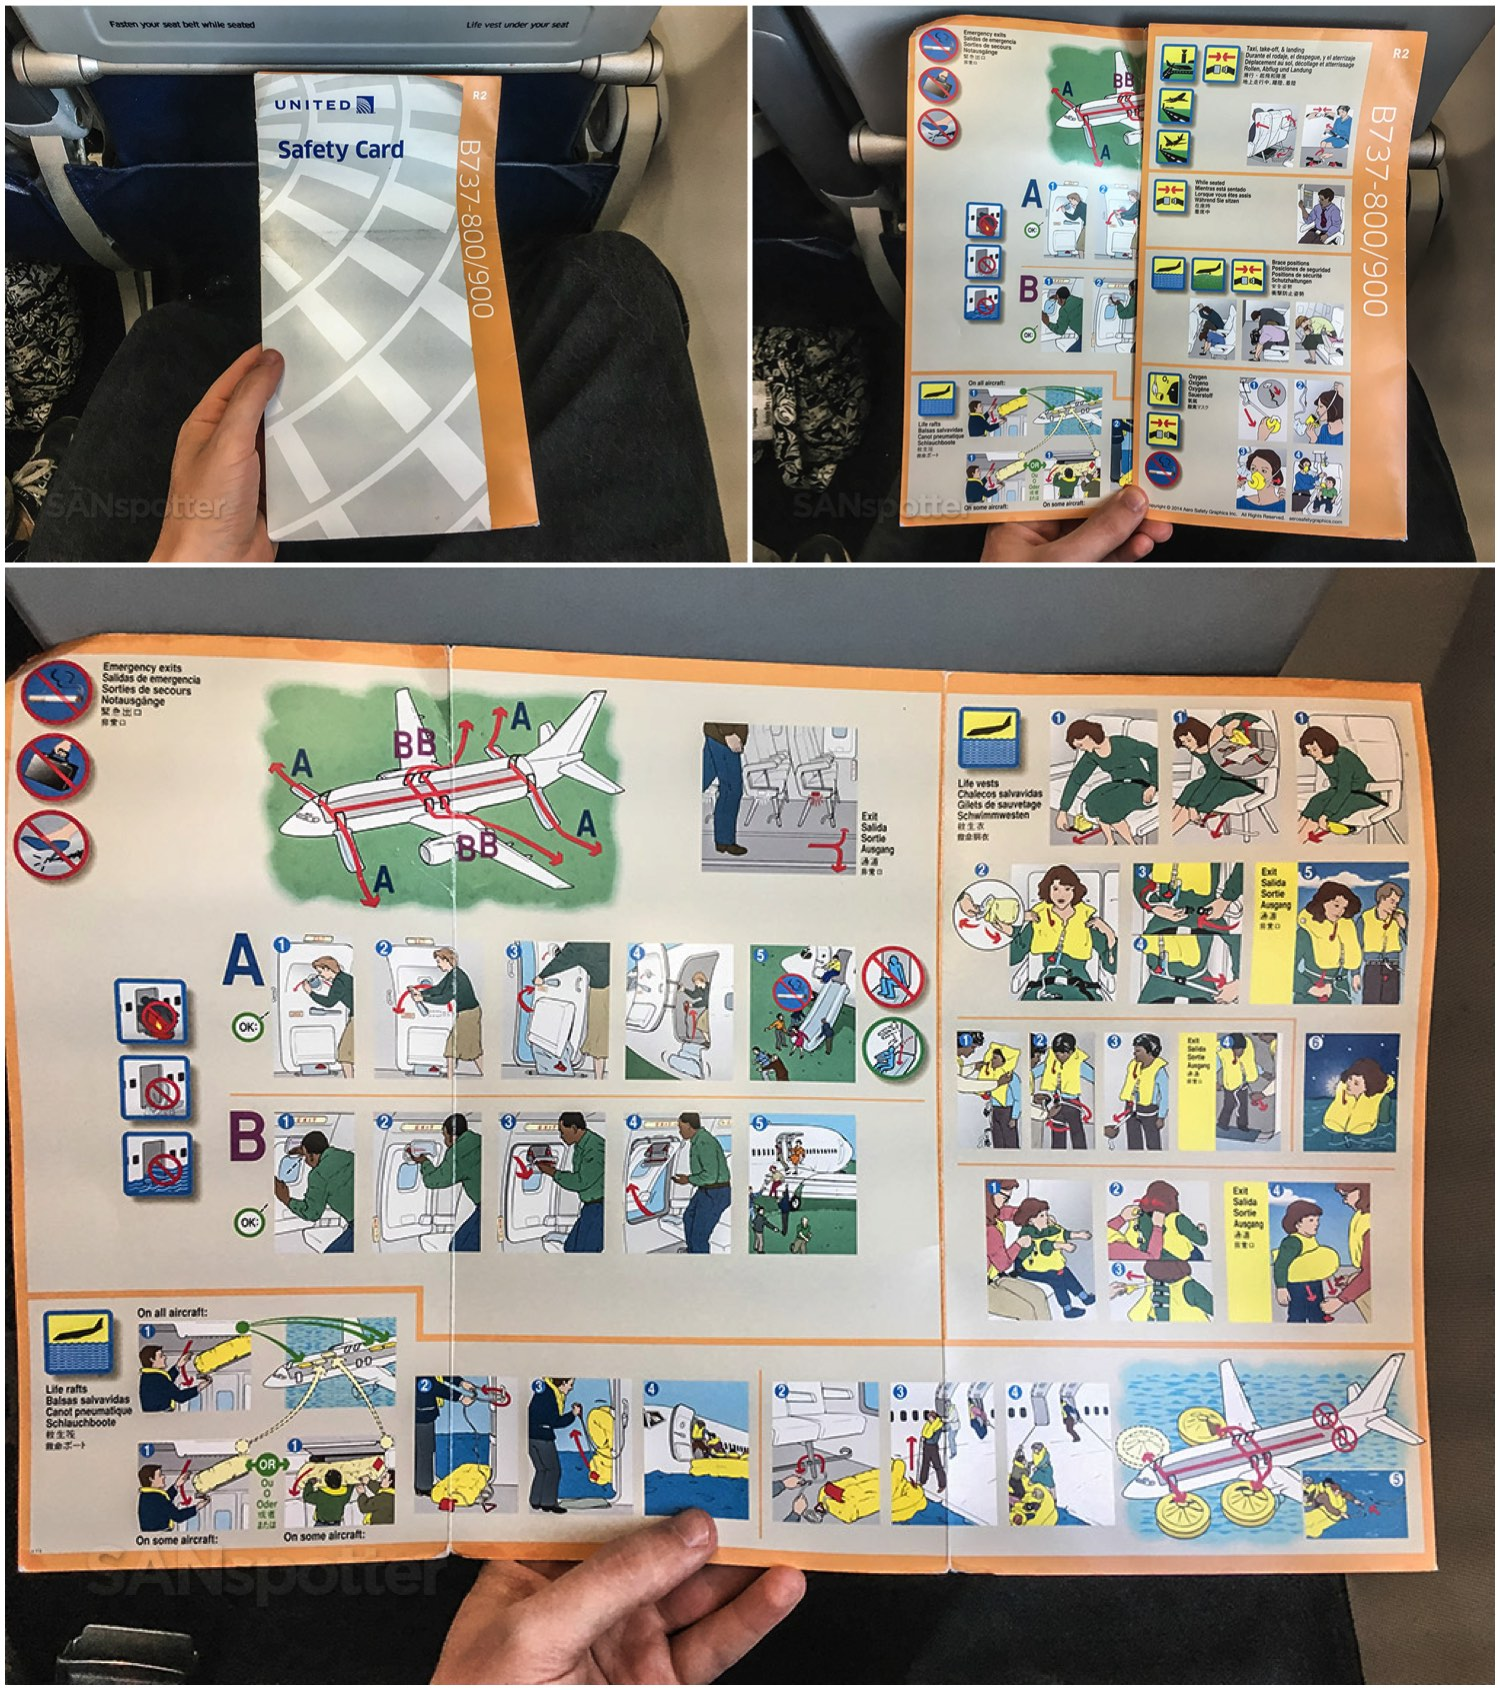 United Airlines 737–900ER safety card overview